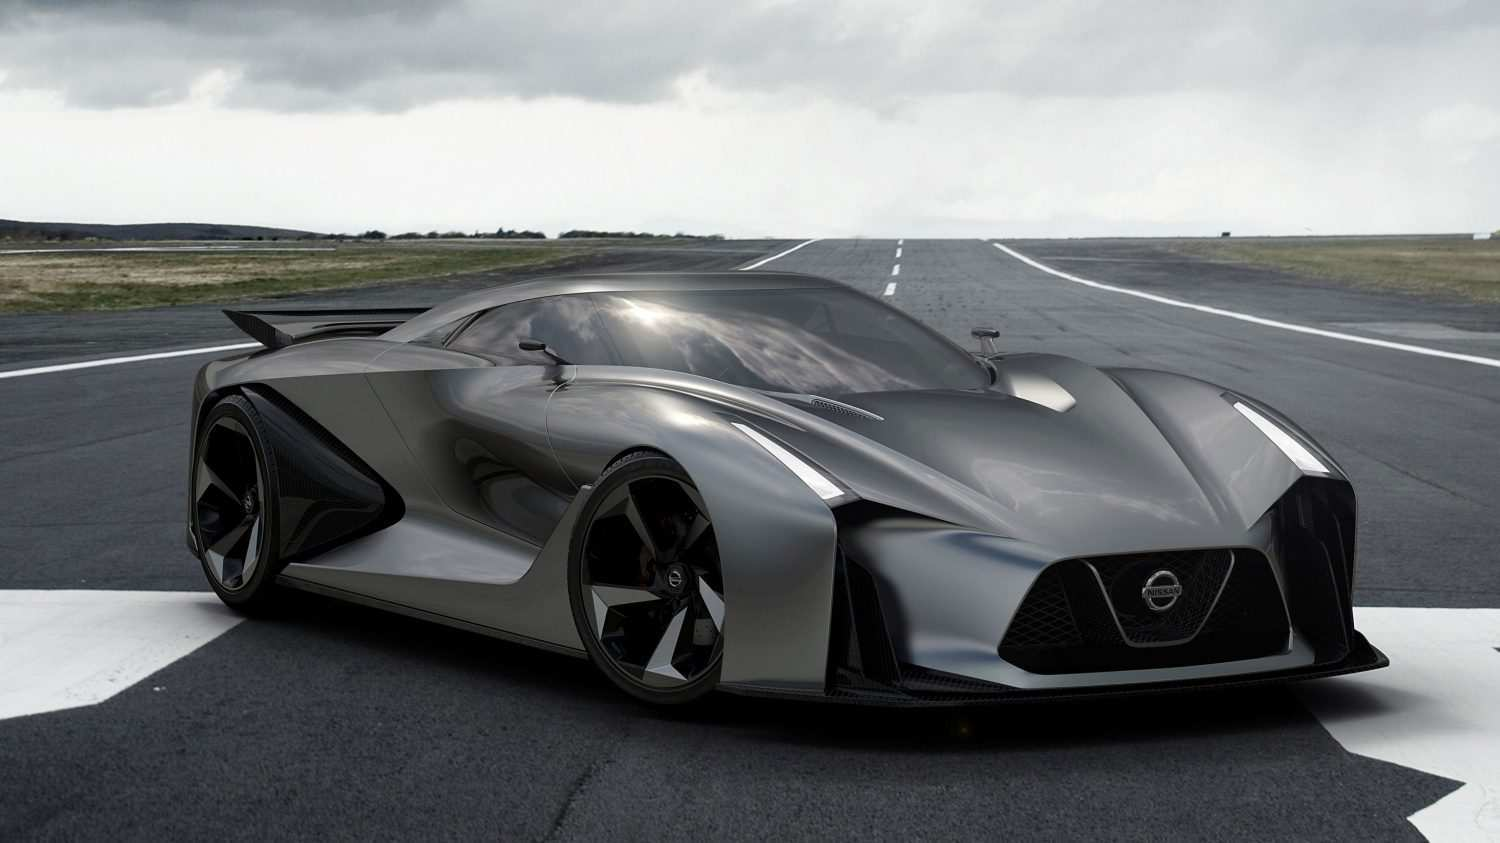 64 Gallery of Nissan Turismo 2020 New Review with Nissan Turismo 2020